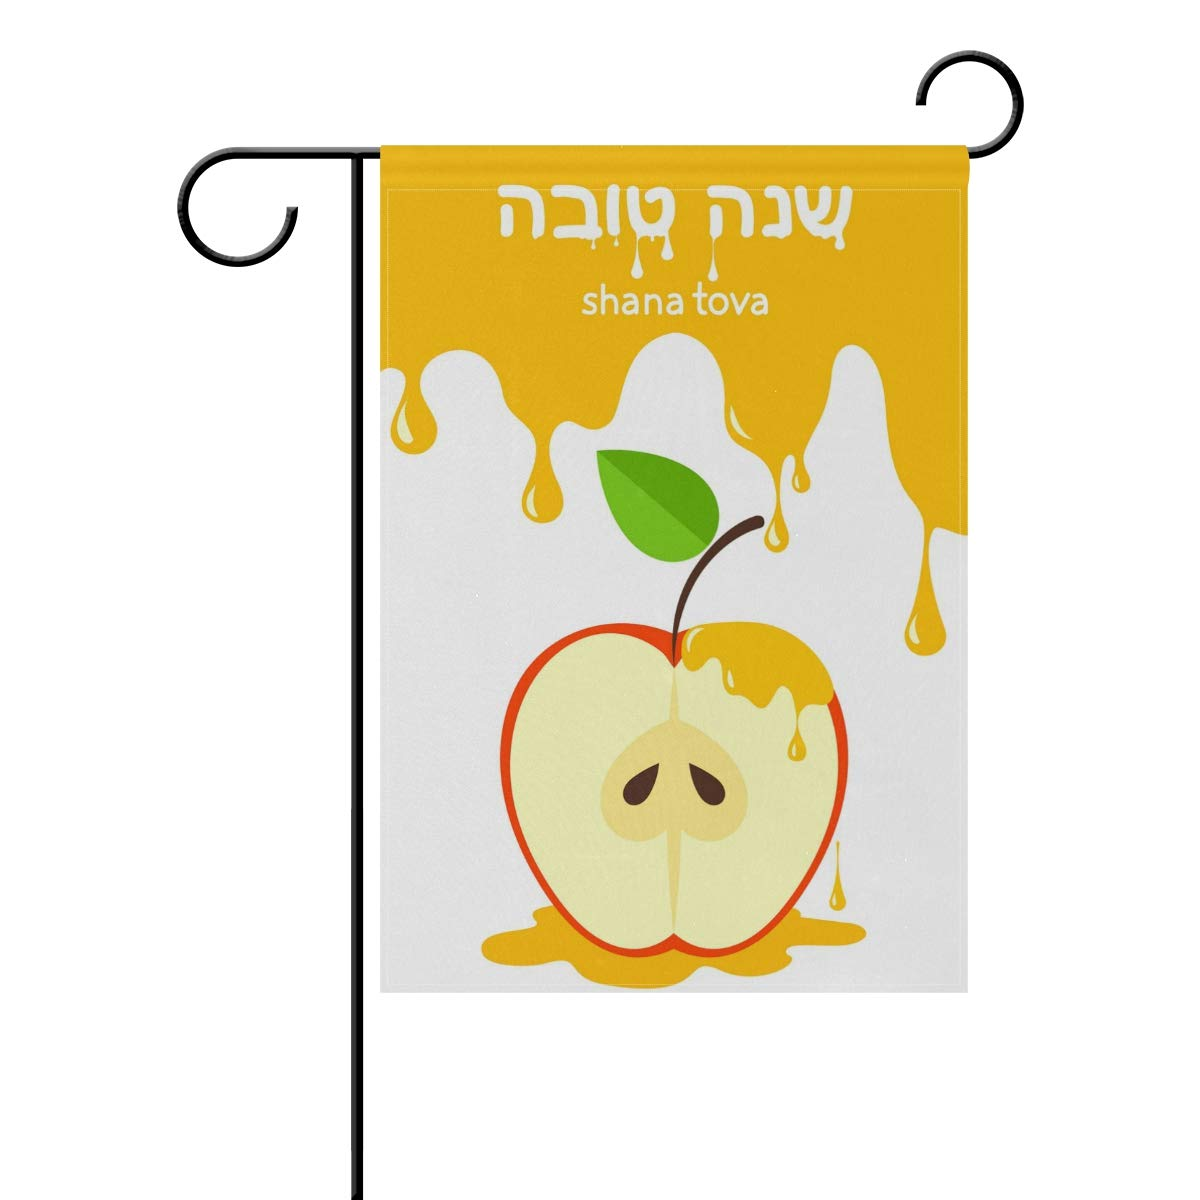 YZGO New Year Shana Tova Holiday Rosh Hashanah Garden Flag Home Polyester Fabric Mildew Resistant Welcome House Yard Banner,12x18 inch